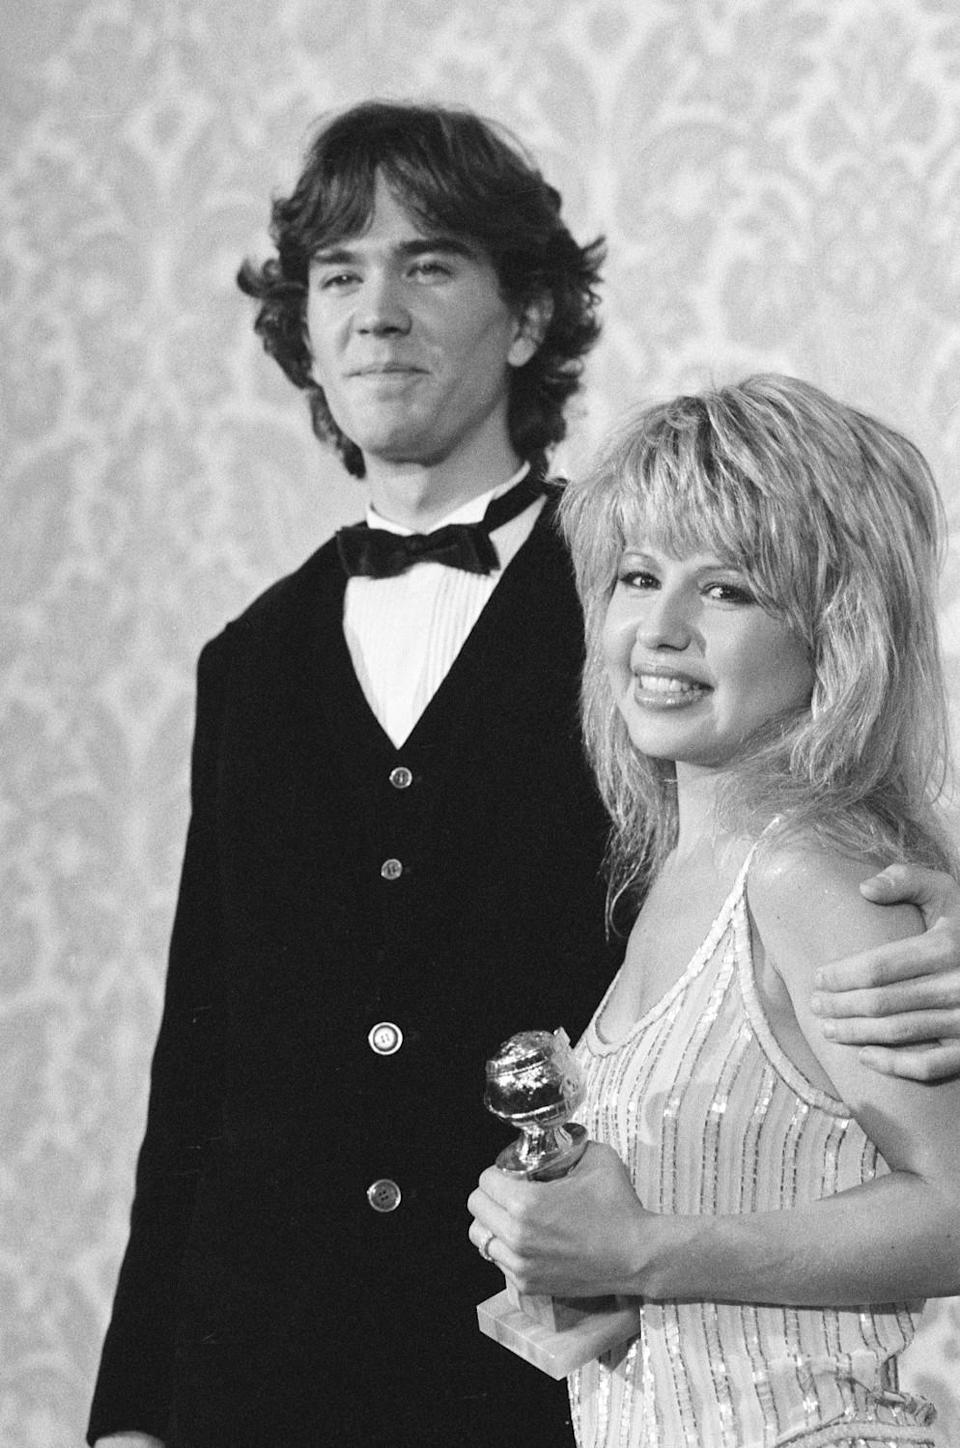 Pia Zadora holds a Golden Globes statuette in a picture with her husband